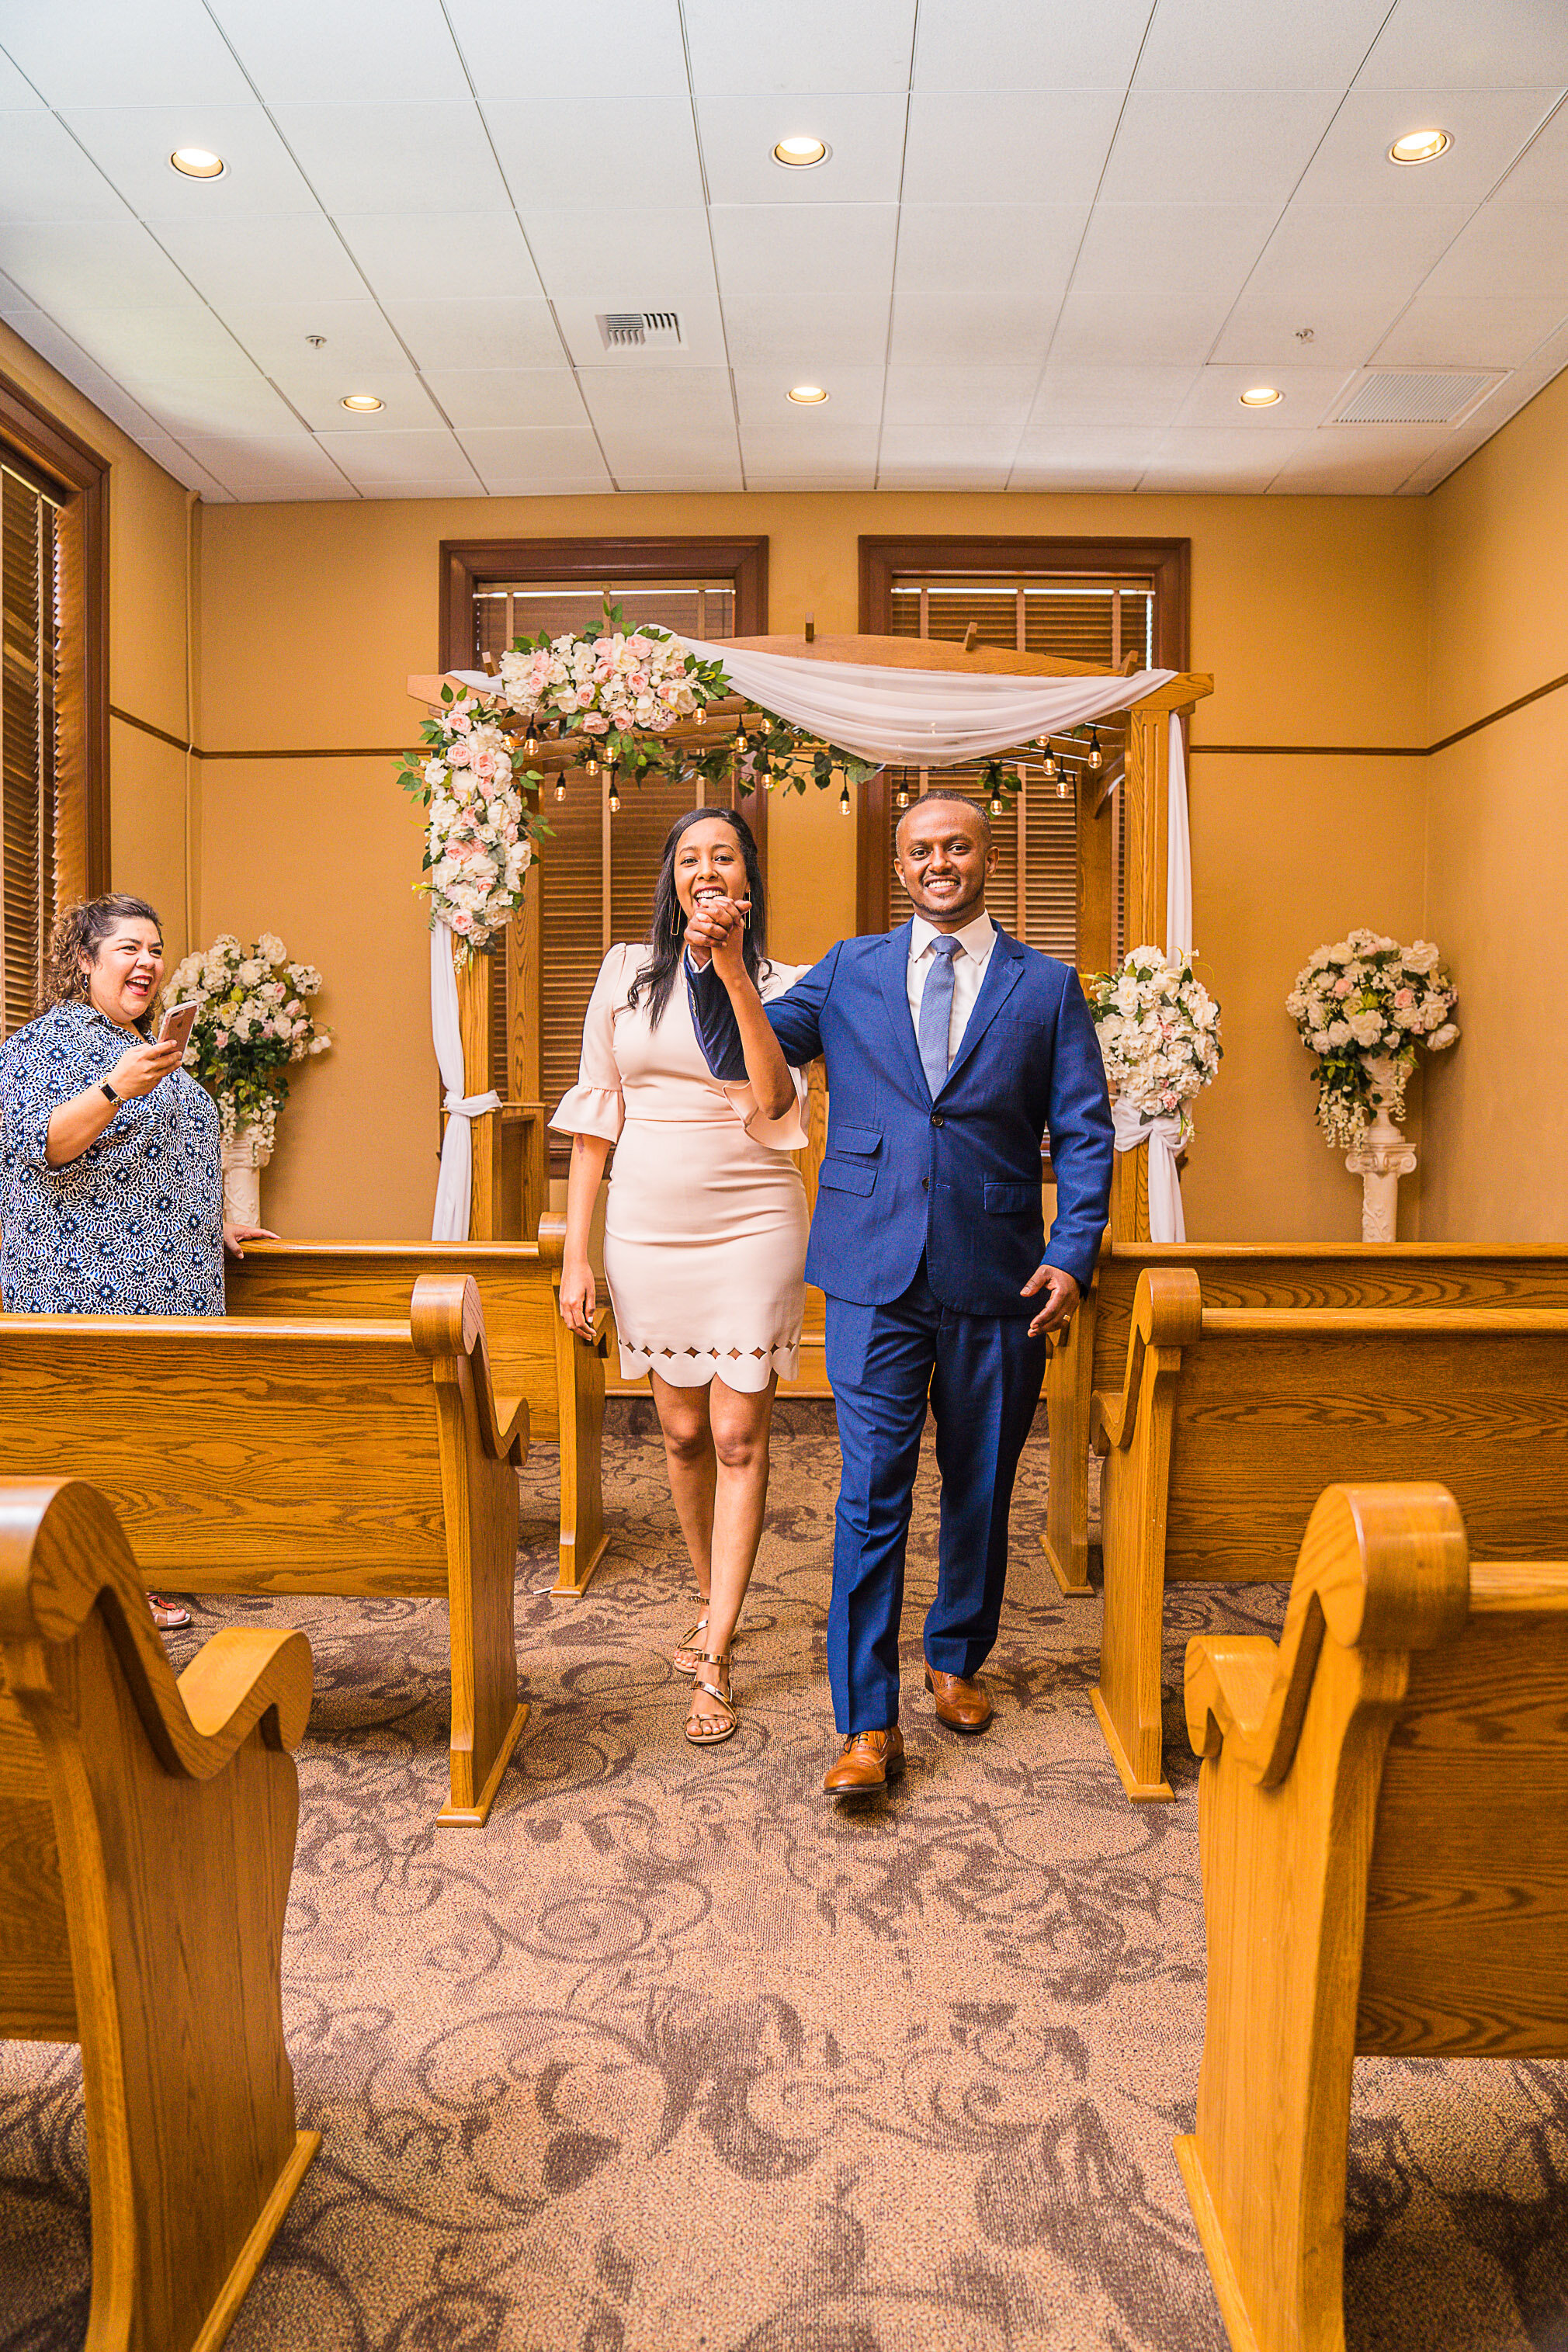 sewit-elopement-orange-county-santa-ana-courthouse-16.jpg